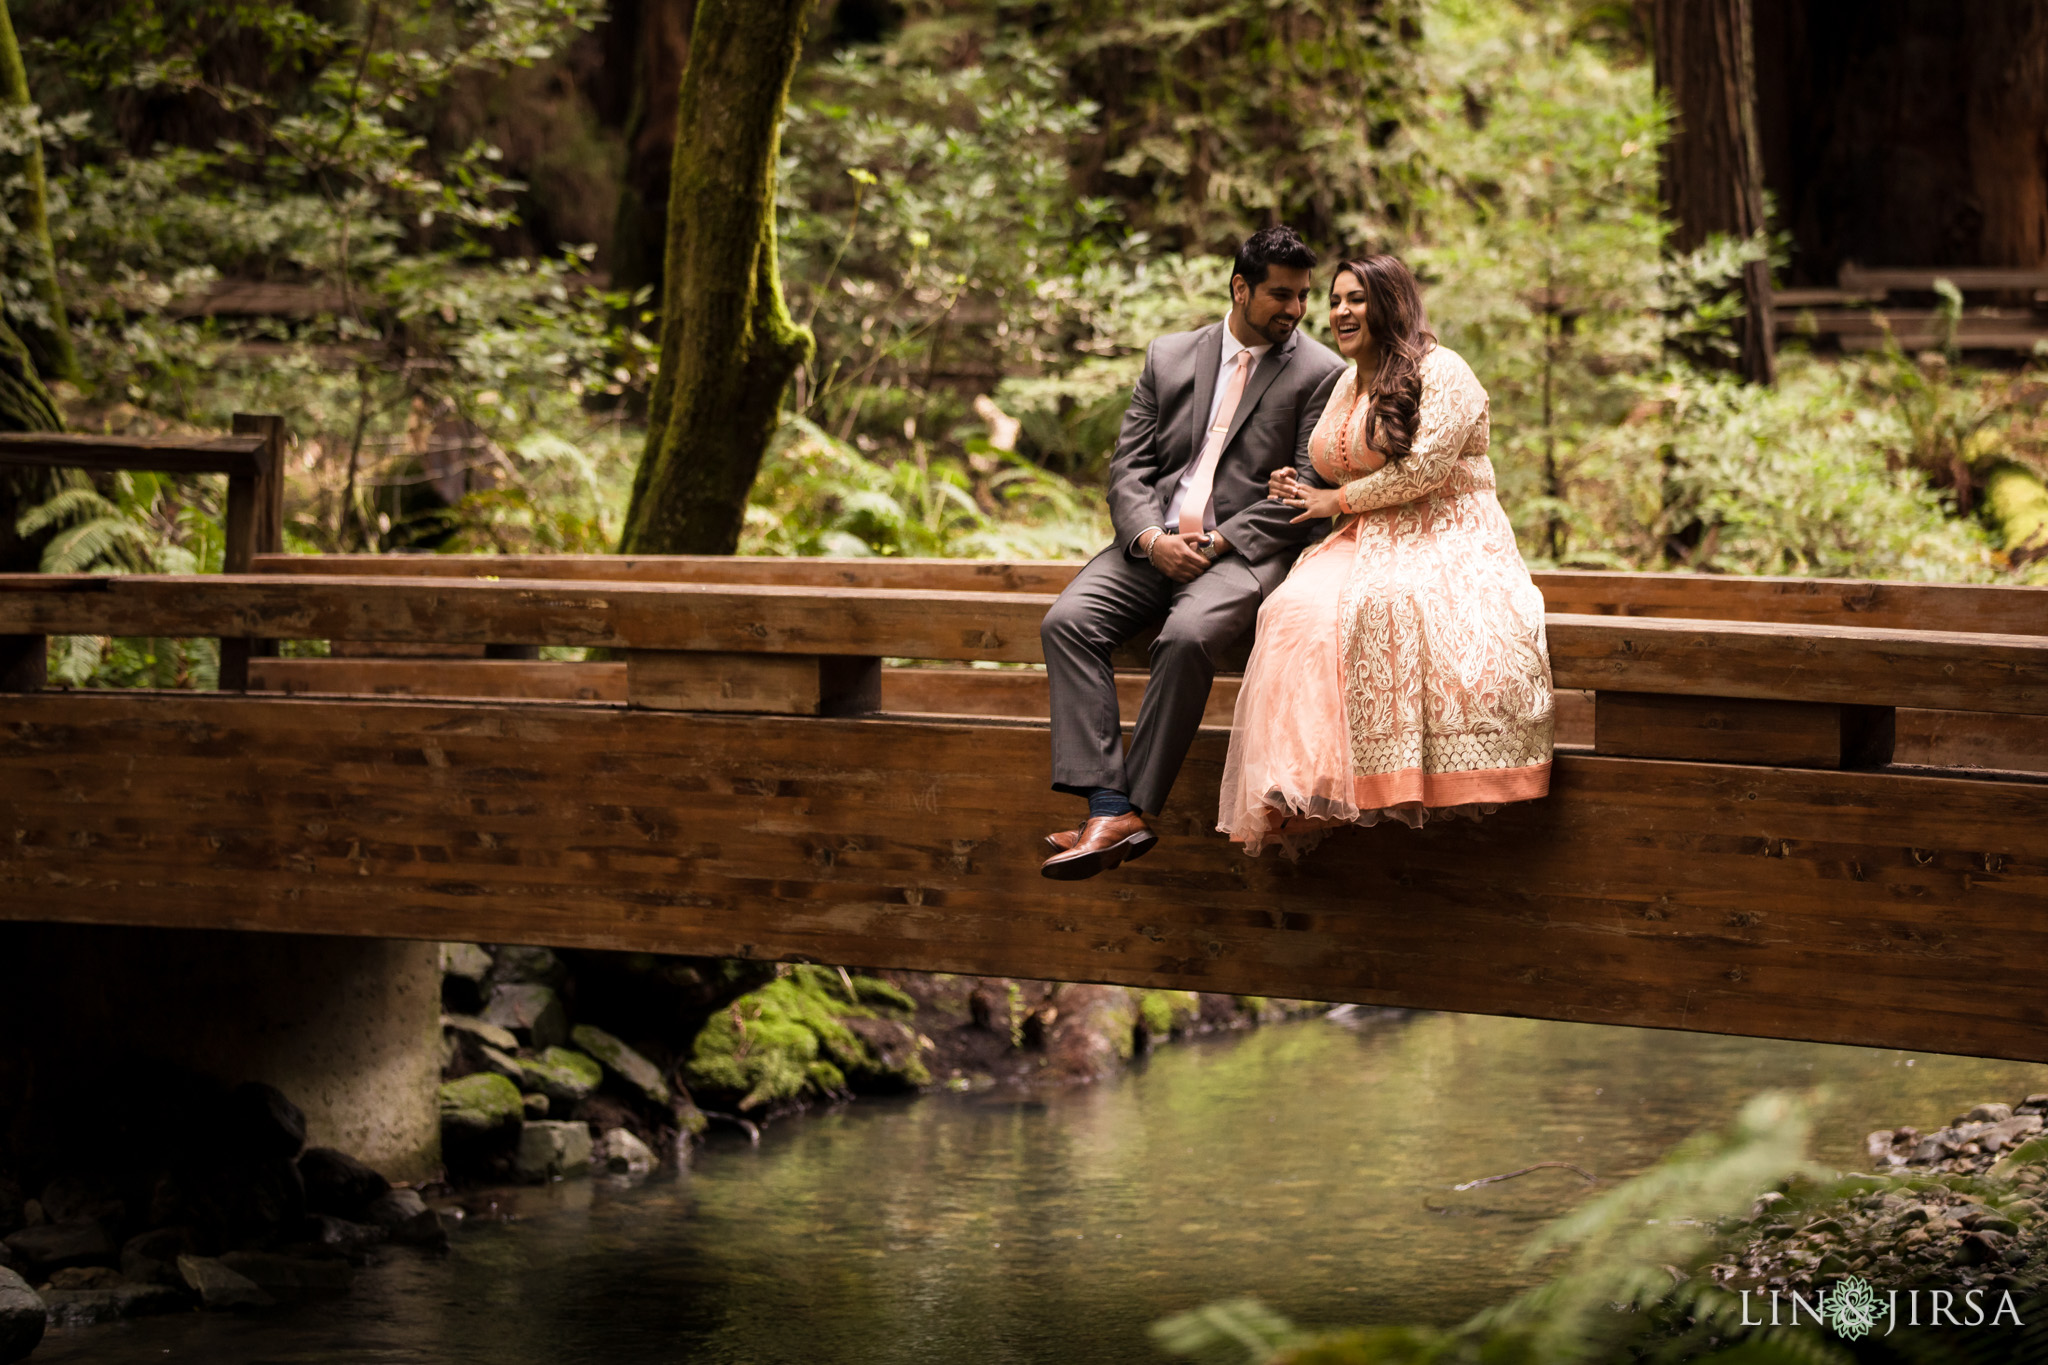 06-San-francisco-muir-woods-marin-county-engagement-photography